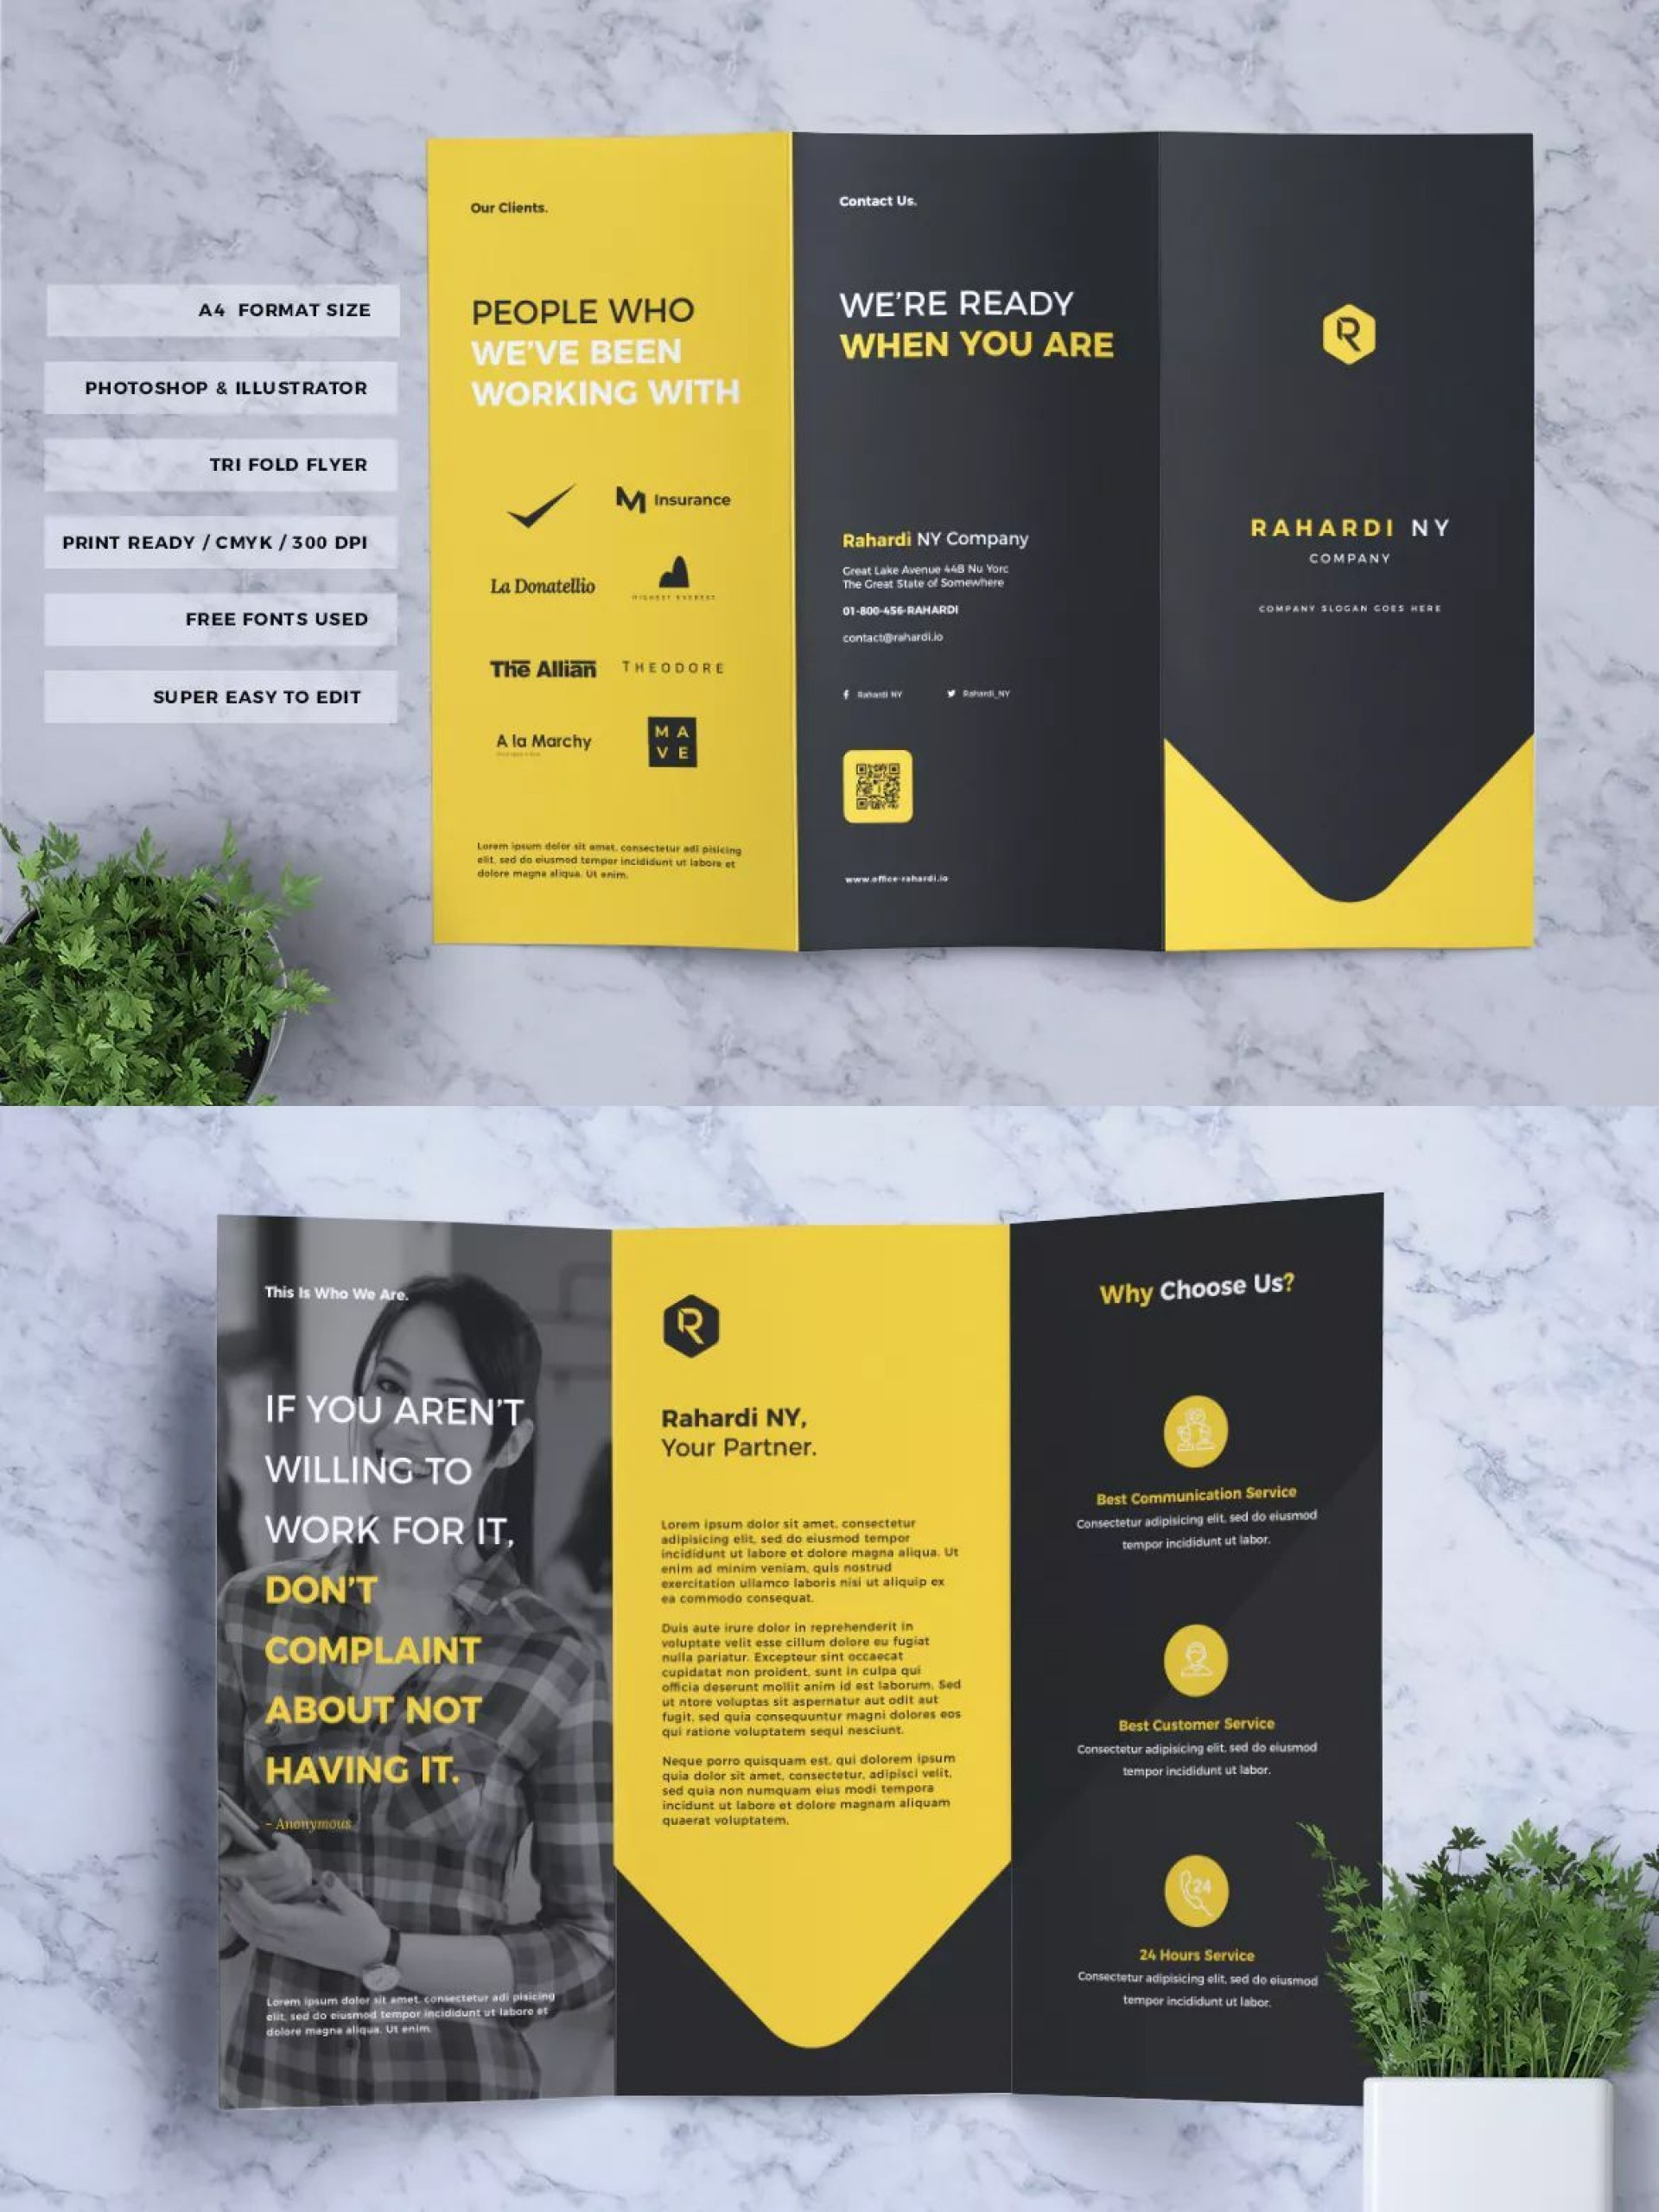 005 Fearsome Adobe Photoshop Brochure Template Free Download Design 1920